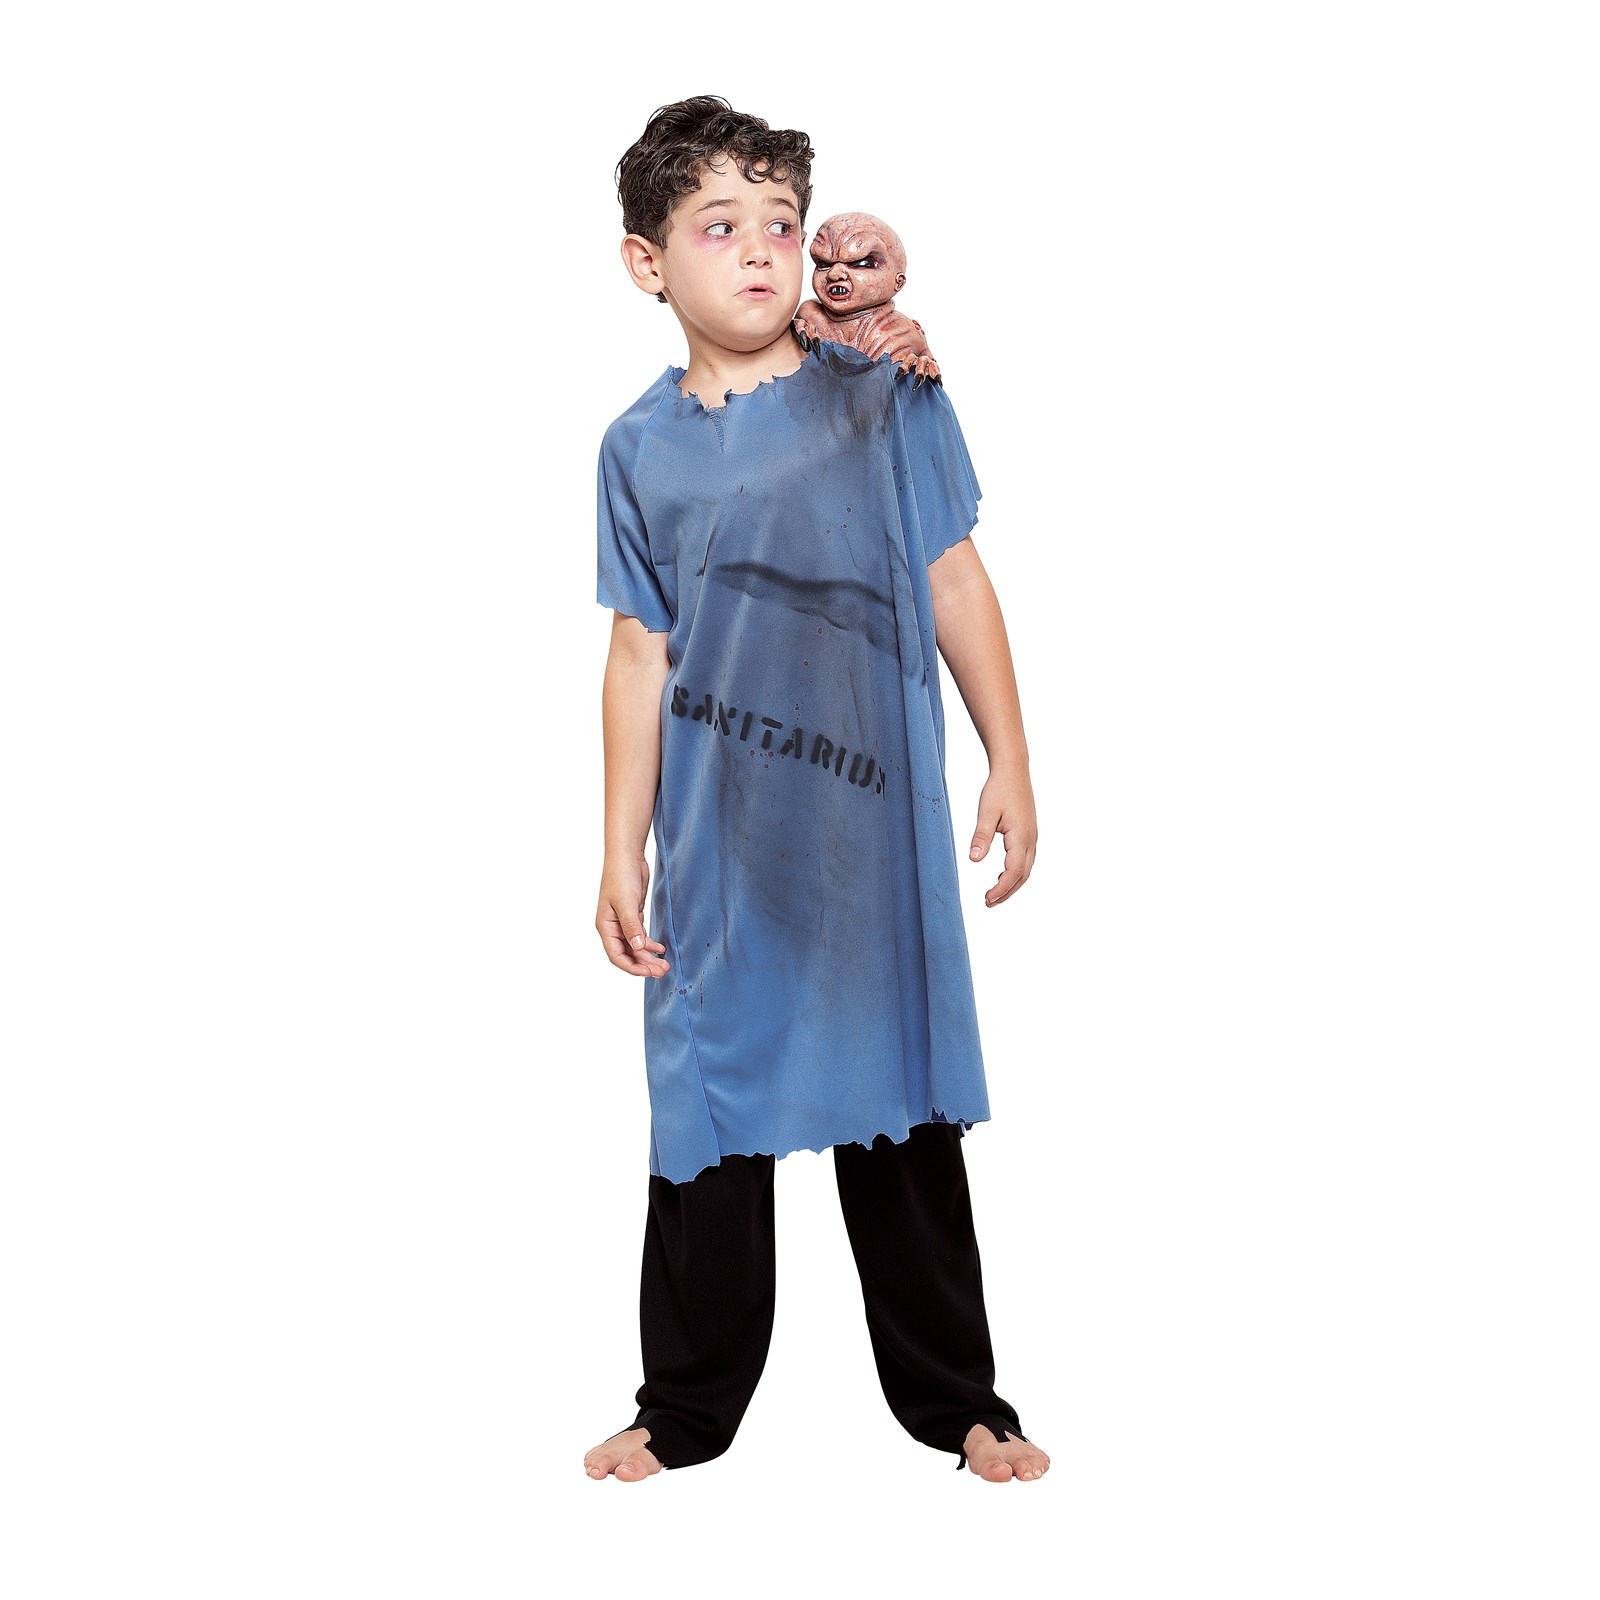 Parasitic Twin Pre-Teen Costume | BuyCostumes.com: http://www.buycostumes.com/p/33412/parasitic-twin-pre-teen-costume